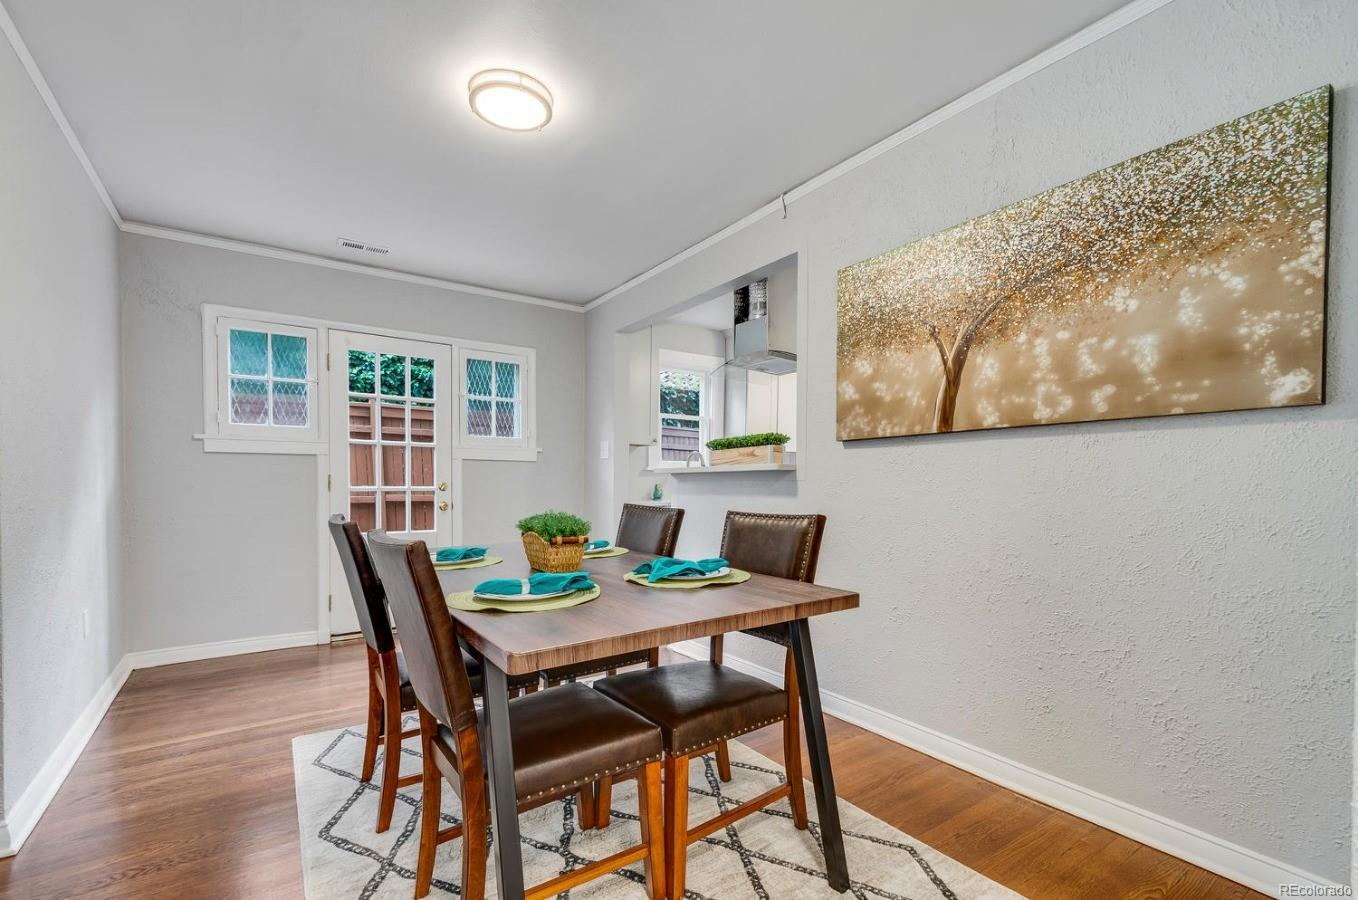 Dining Room provides access to the back deck and yard.